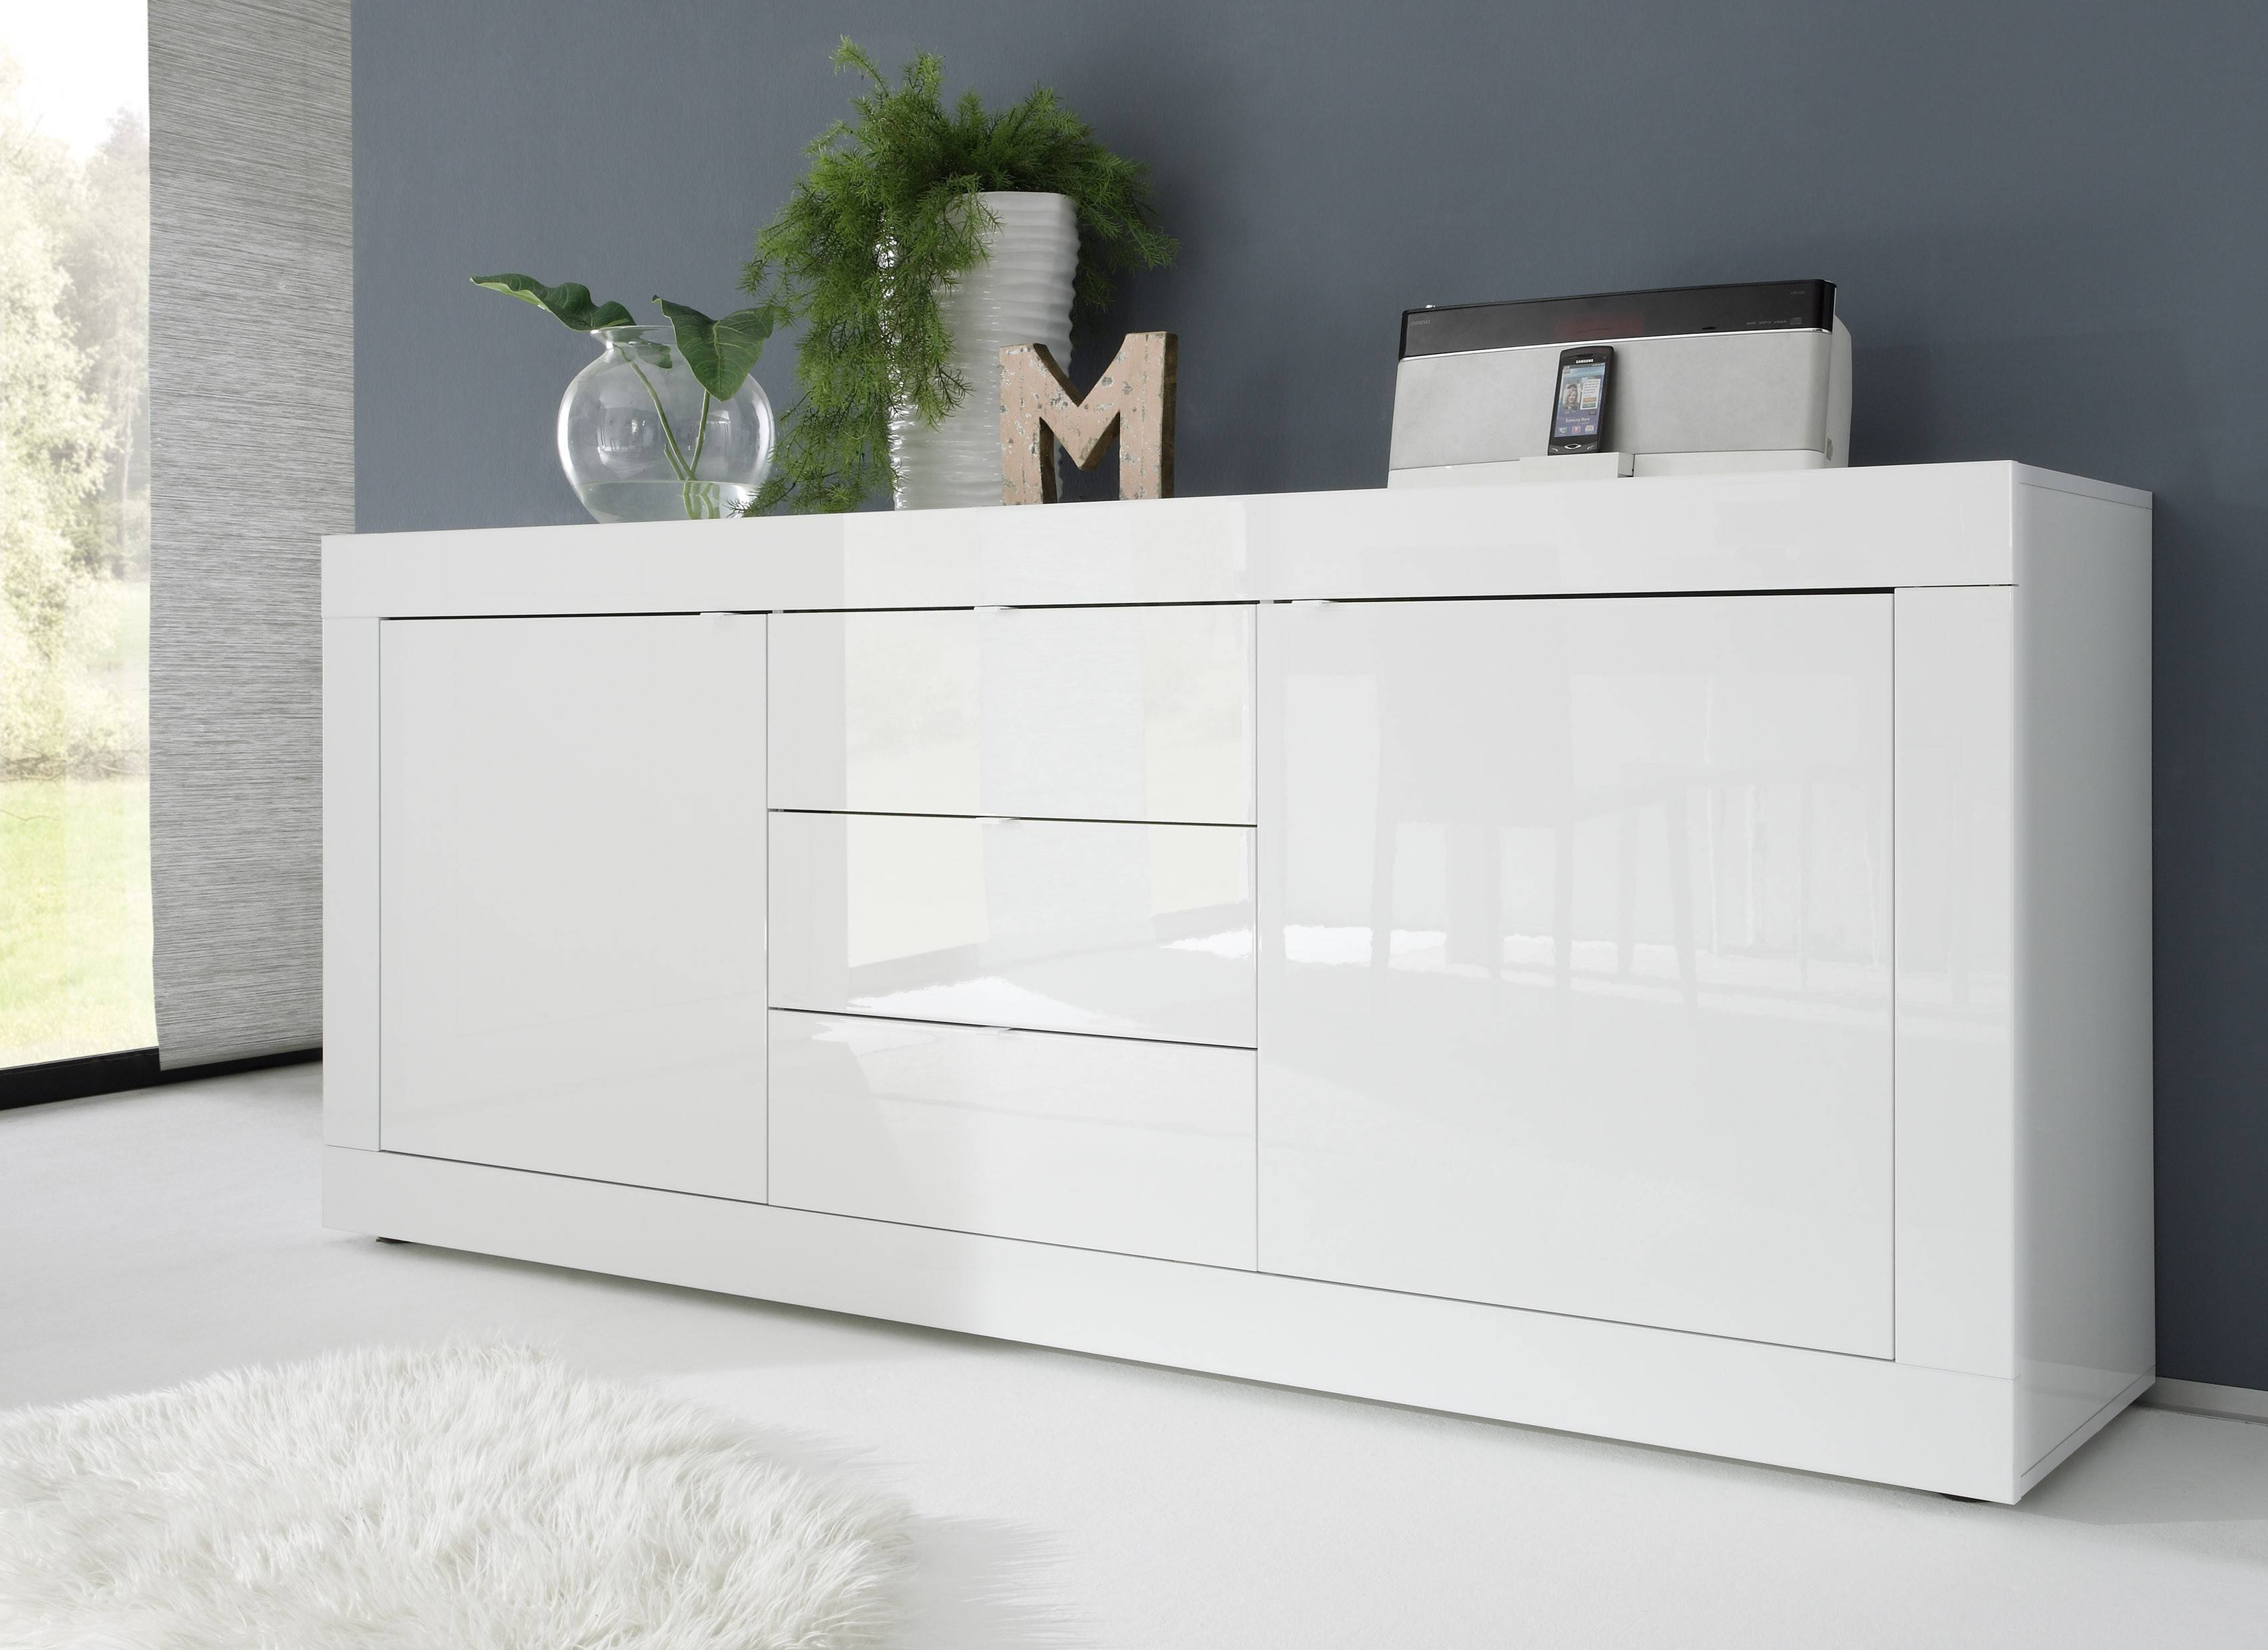 Best Of White Buffet Sideboard – Bjdgjy Intended For White Buffet Sideboards (View 5 of 15)